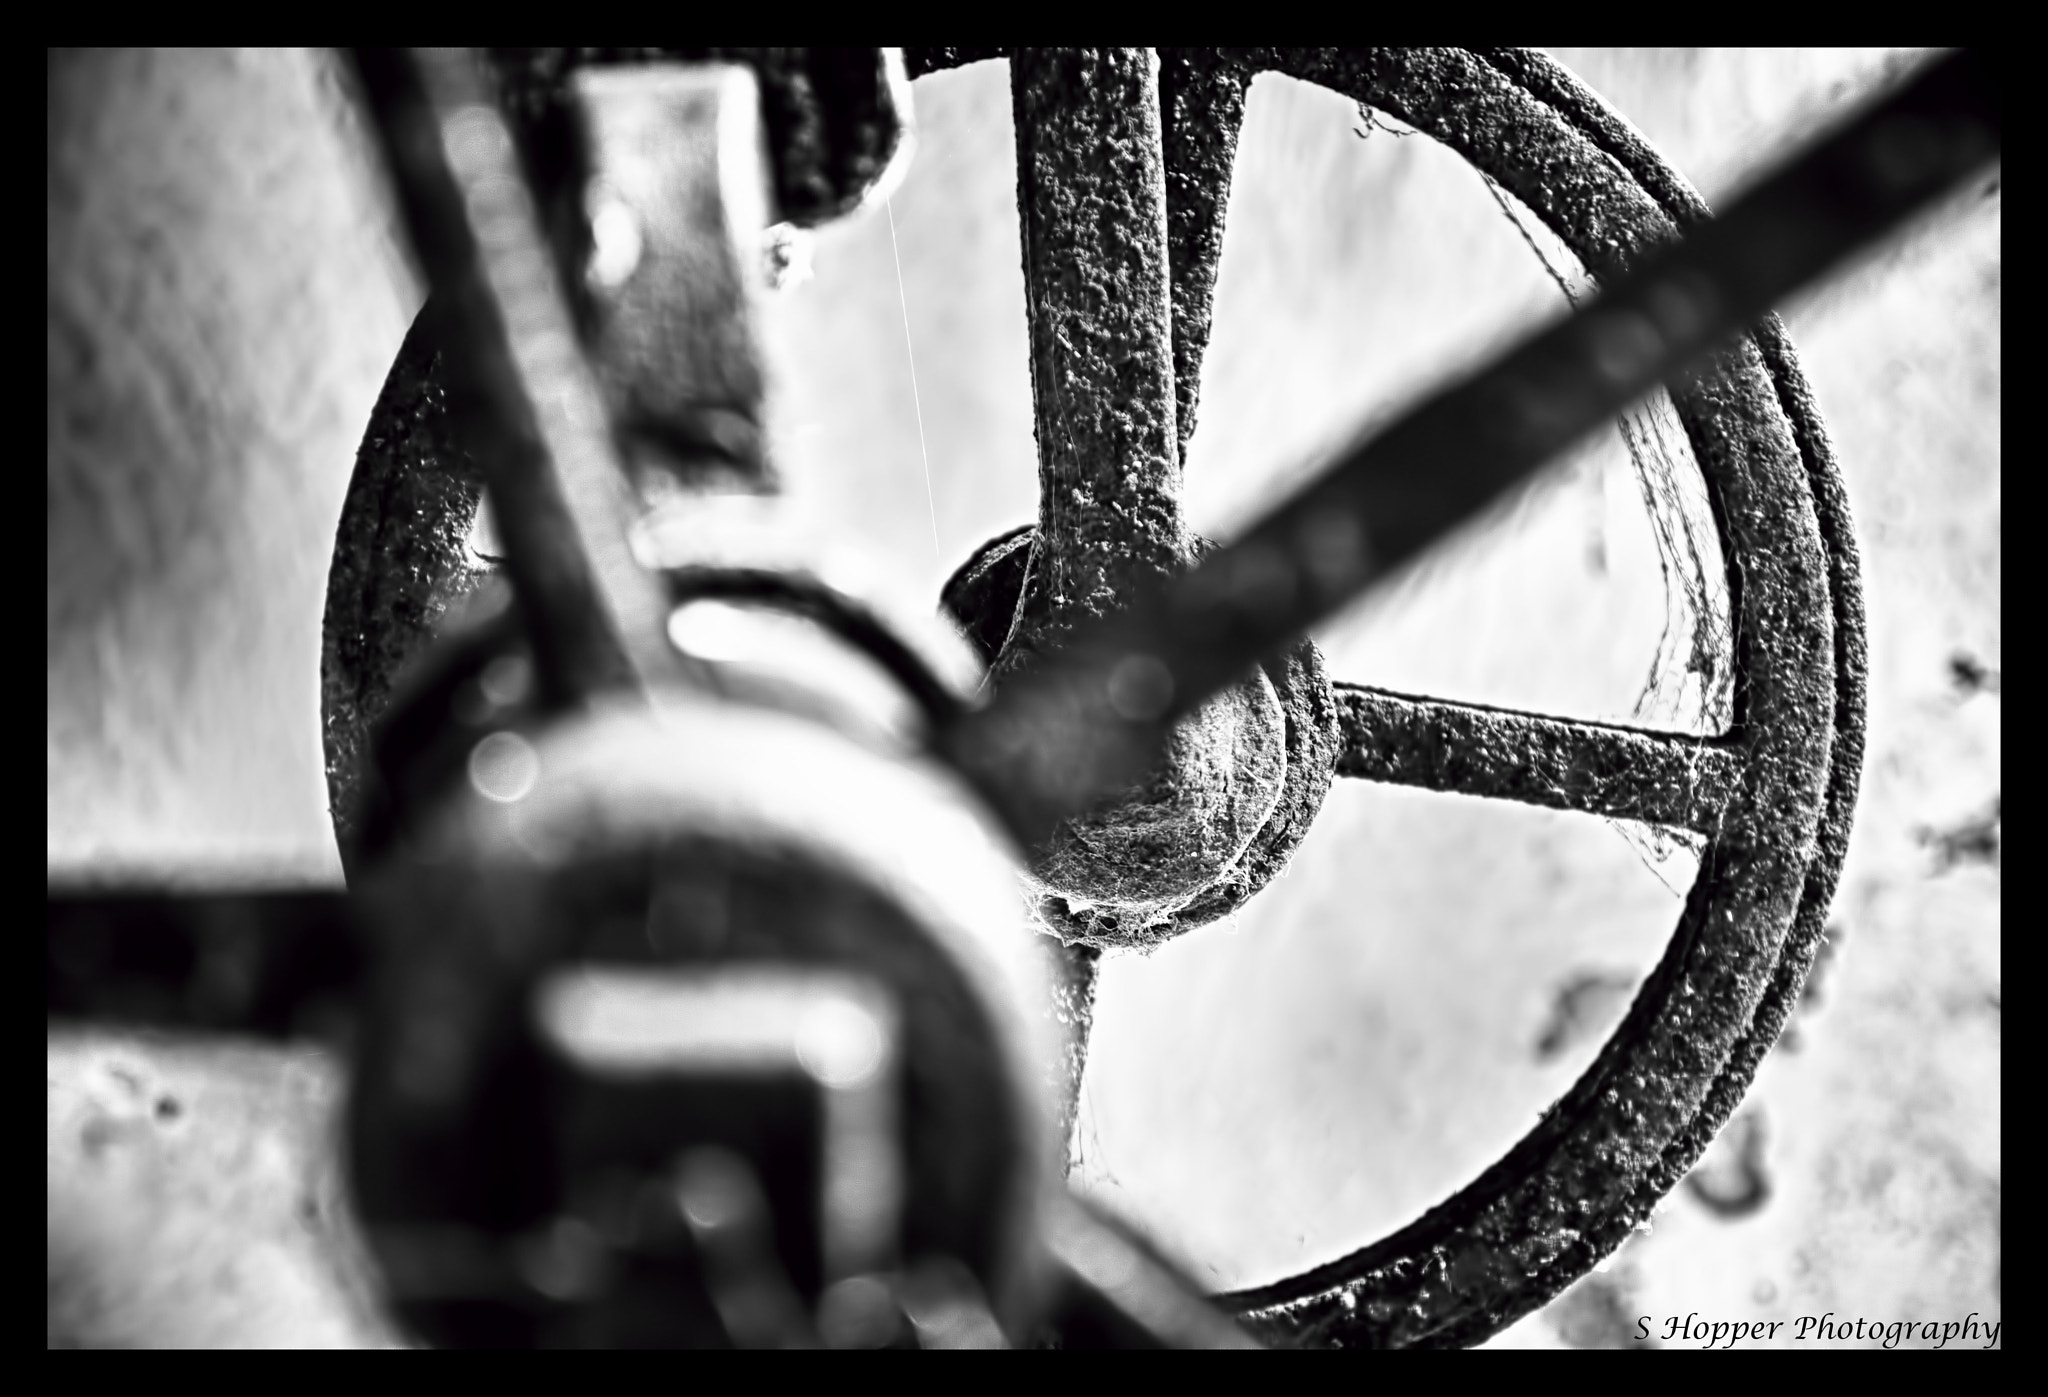 Photograph old historic grader by shannon hopper on 500px